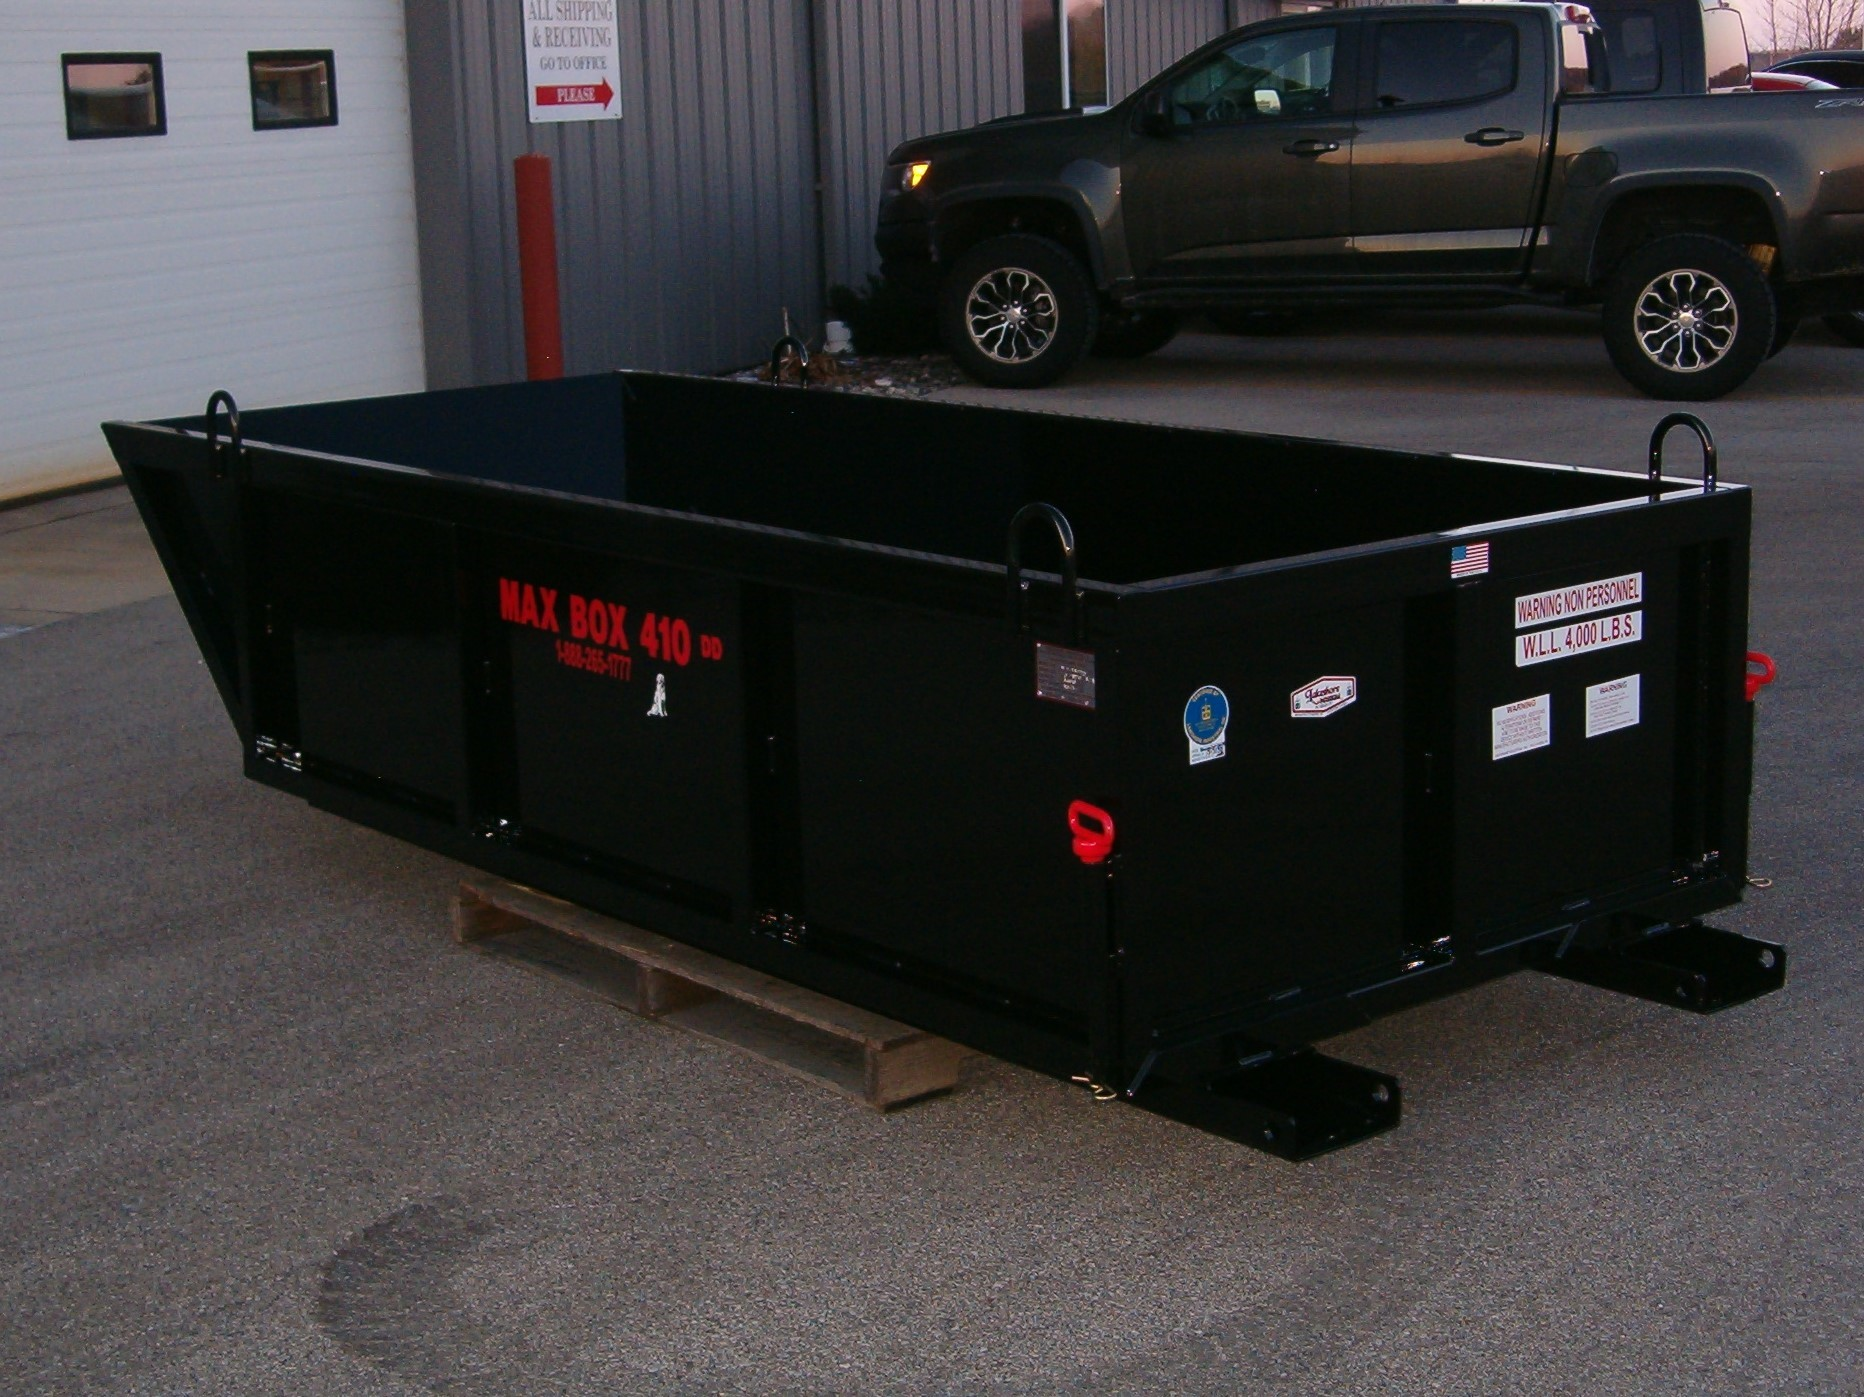 Max Box 410 DD Double Dumper Material Dump Box, debris box, skip pan, manual dump box